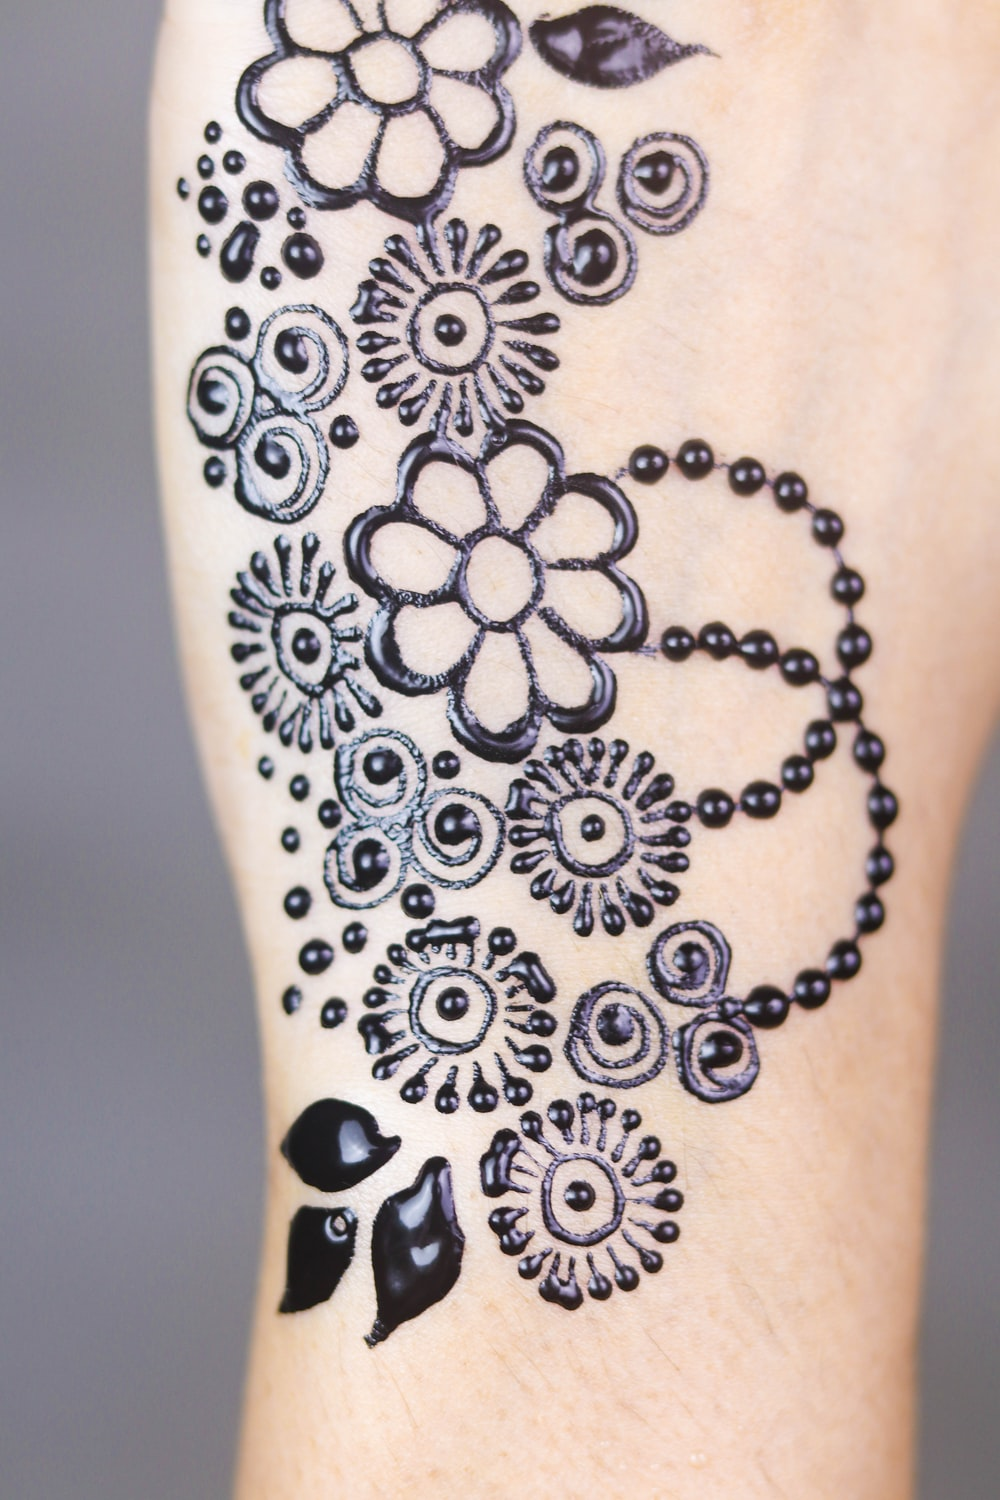 person's petaled flower tattoo